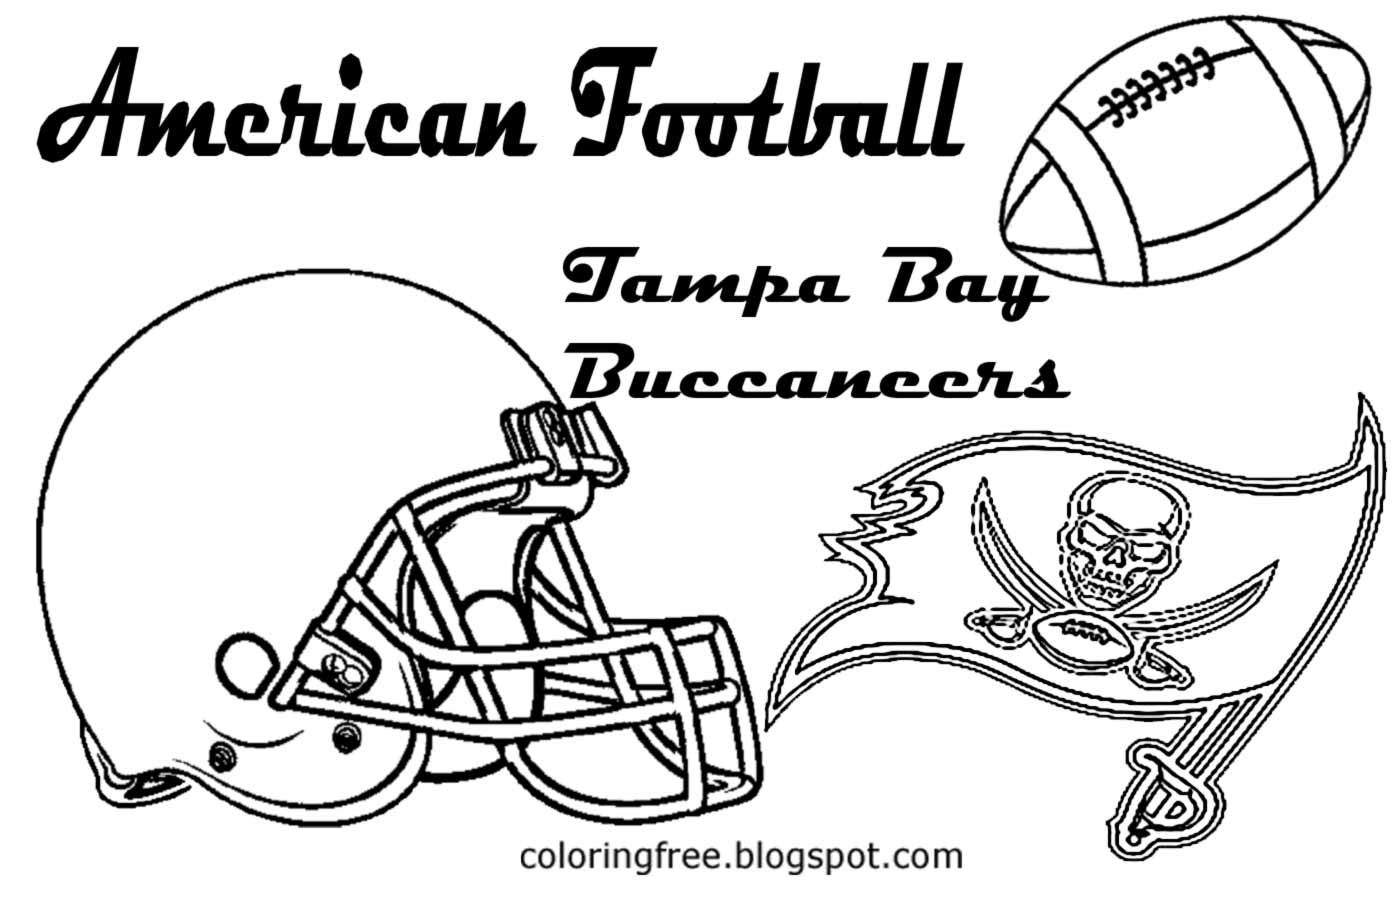 Uncategorized Tampa Bay Buccaneers Coloring Pages free coloring pages printable pictures to color kids drawing ideas tampa bay buccaneers american football logo for boys usa sports